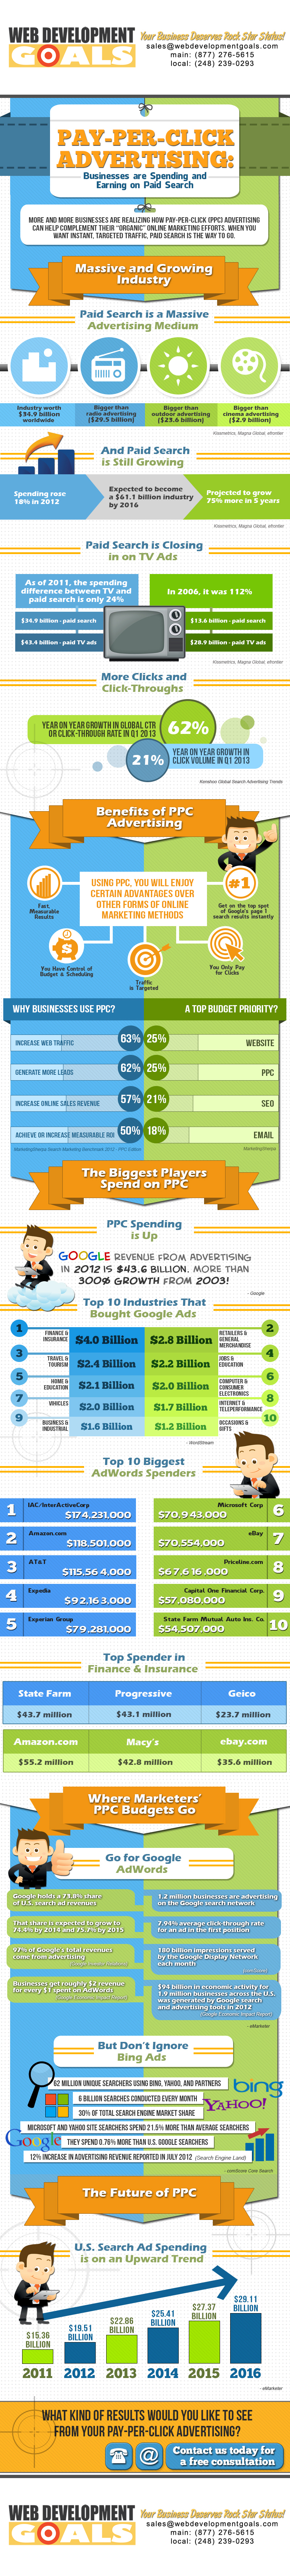 PPC Advertising Facts